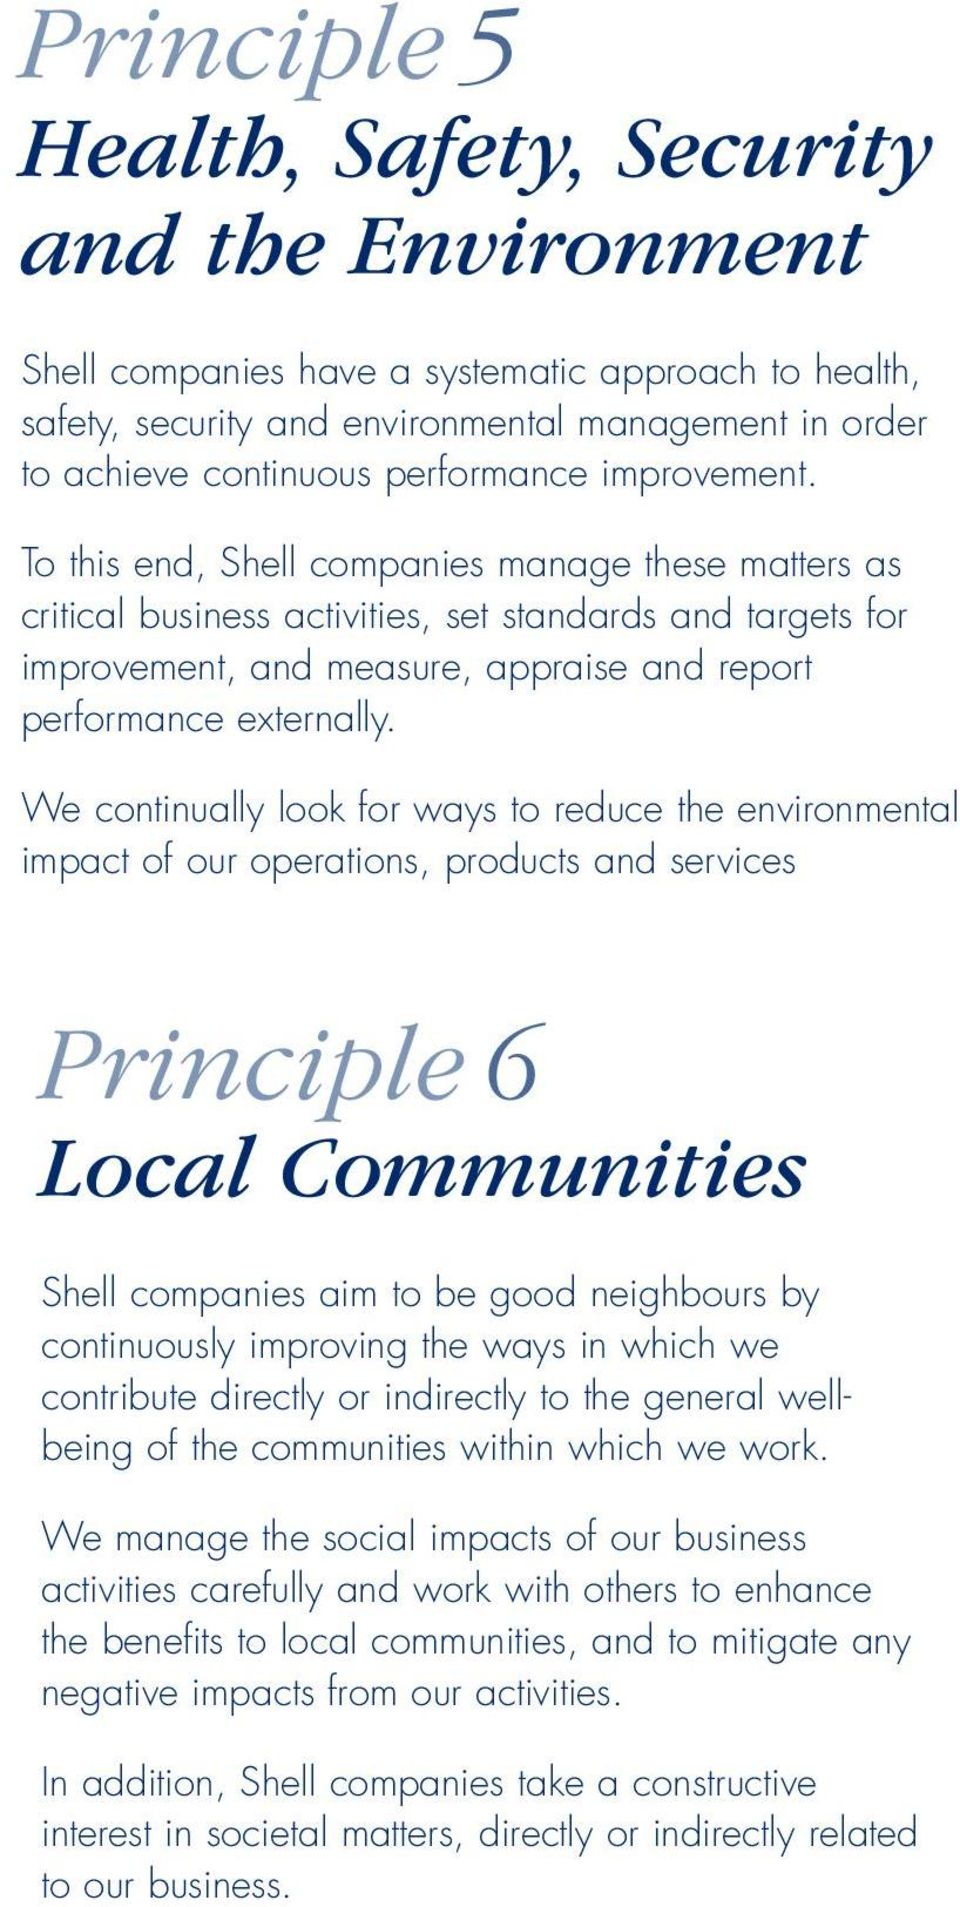 We continually look for ways to reduce the environmental impact of our operations, products and services Principle 6 Local Communities Shell companies aim to be good neighbours by continuously